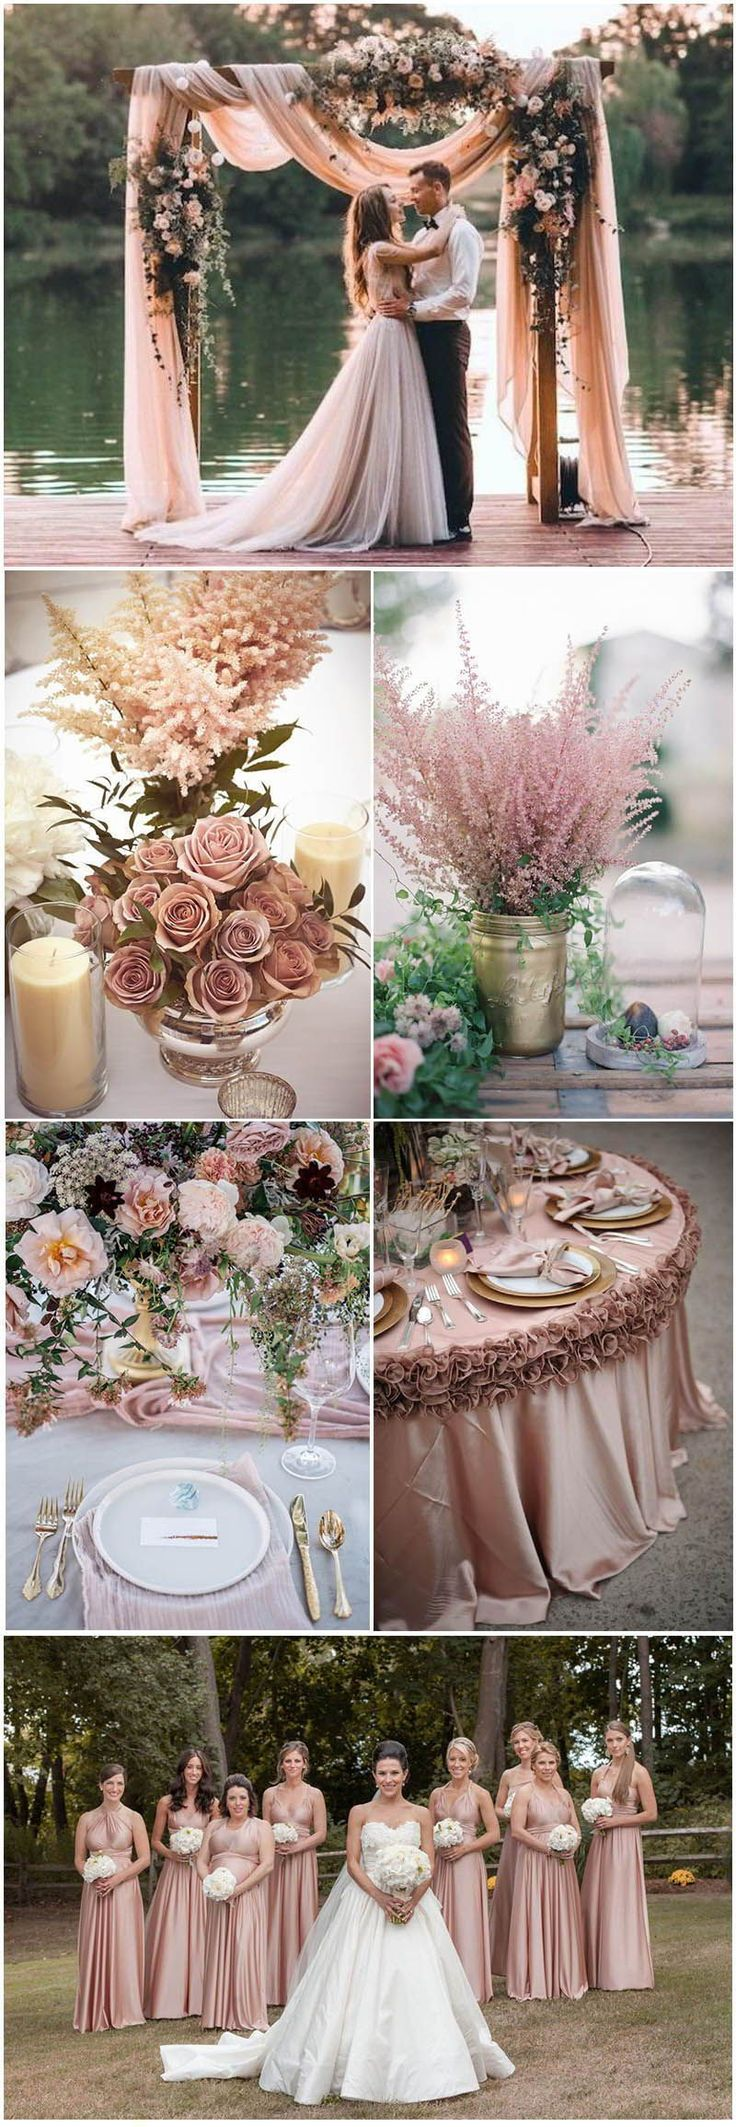 choosing a wedding color theme what you must consider ideen f r die hochzeit pinterest. Black Bedroom Furniture Sets. Home Design Ideas